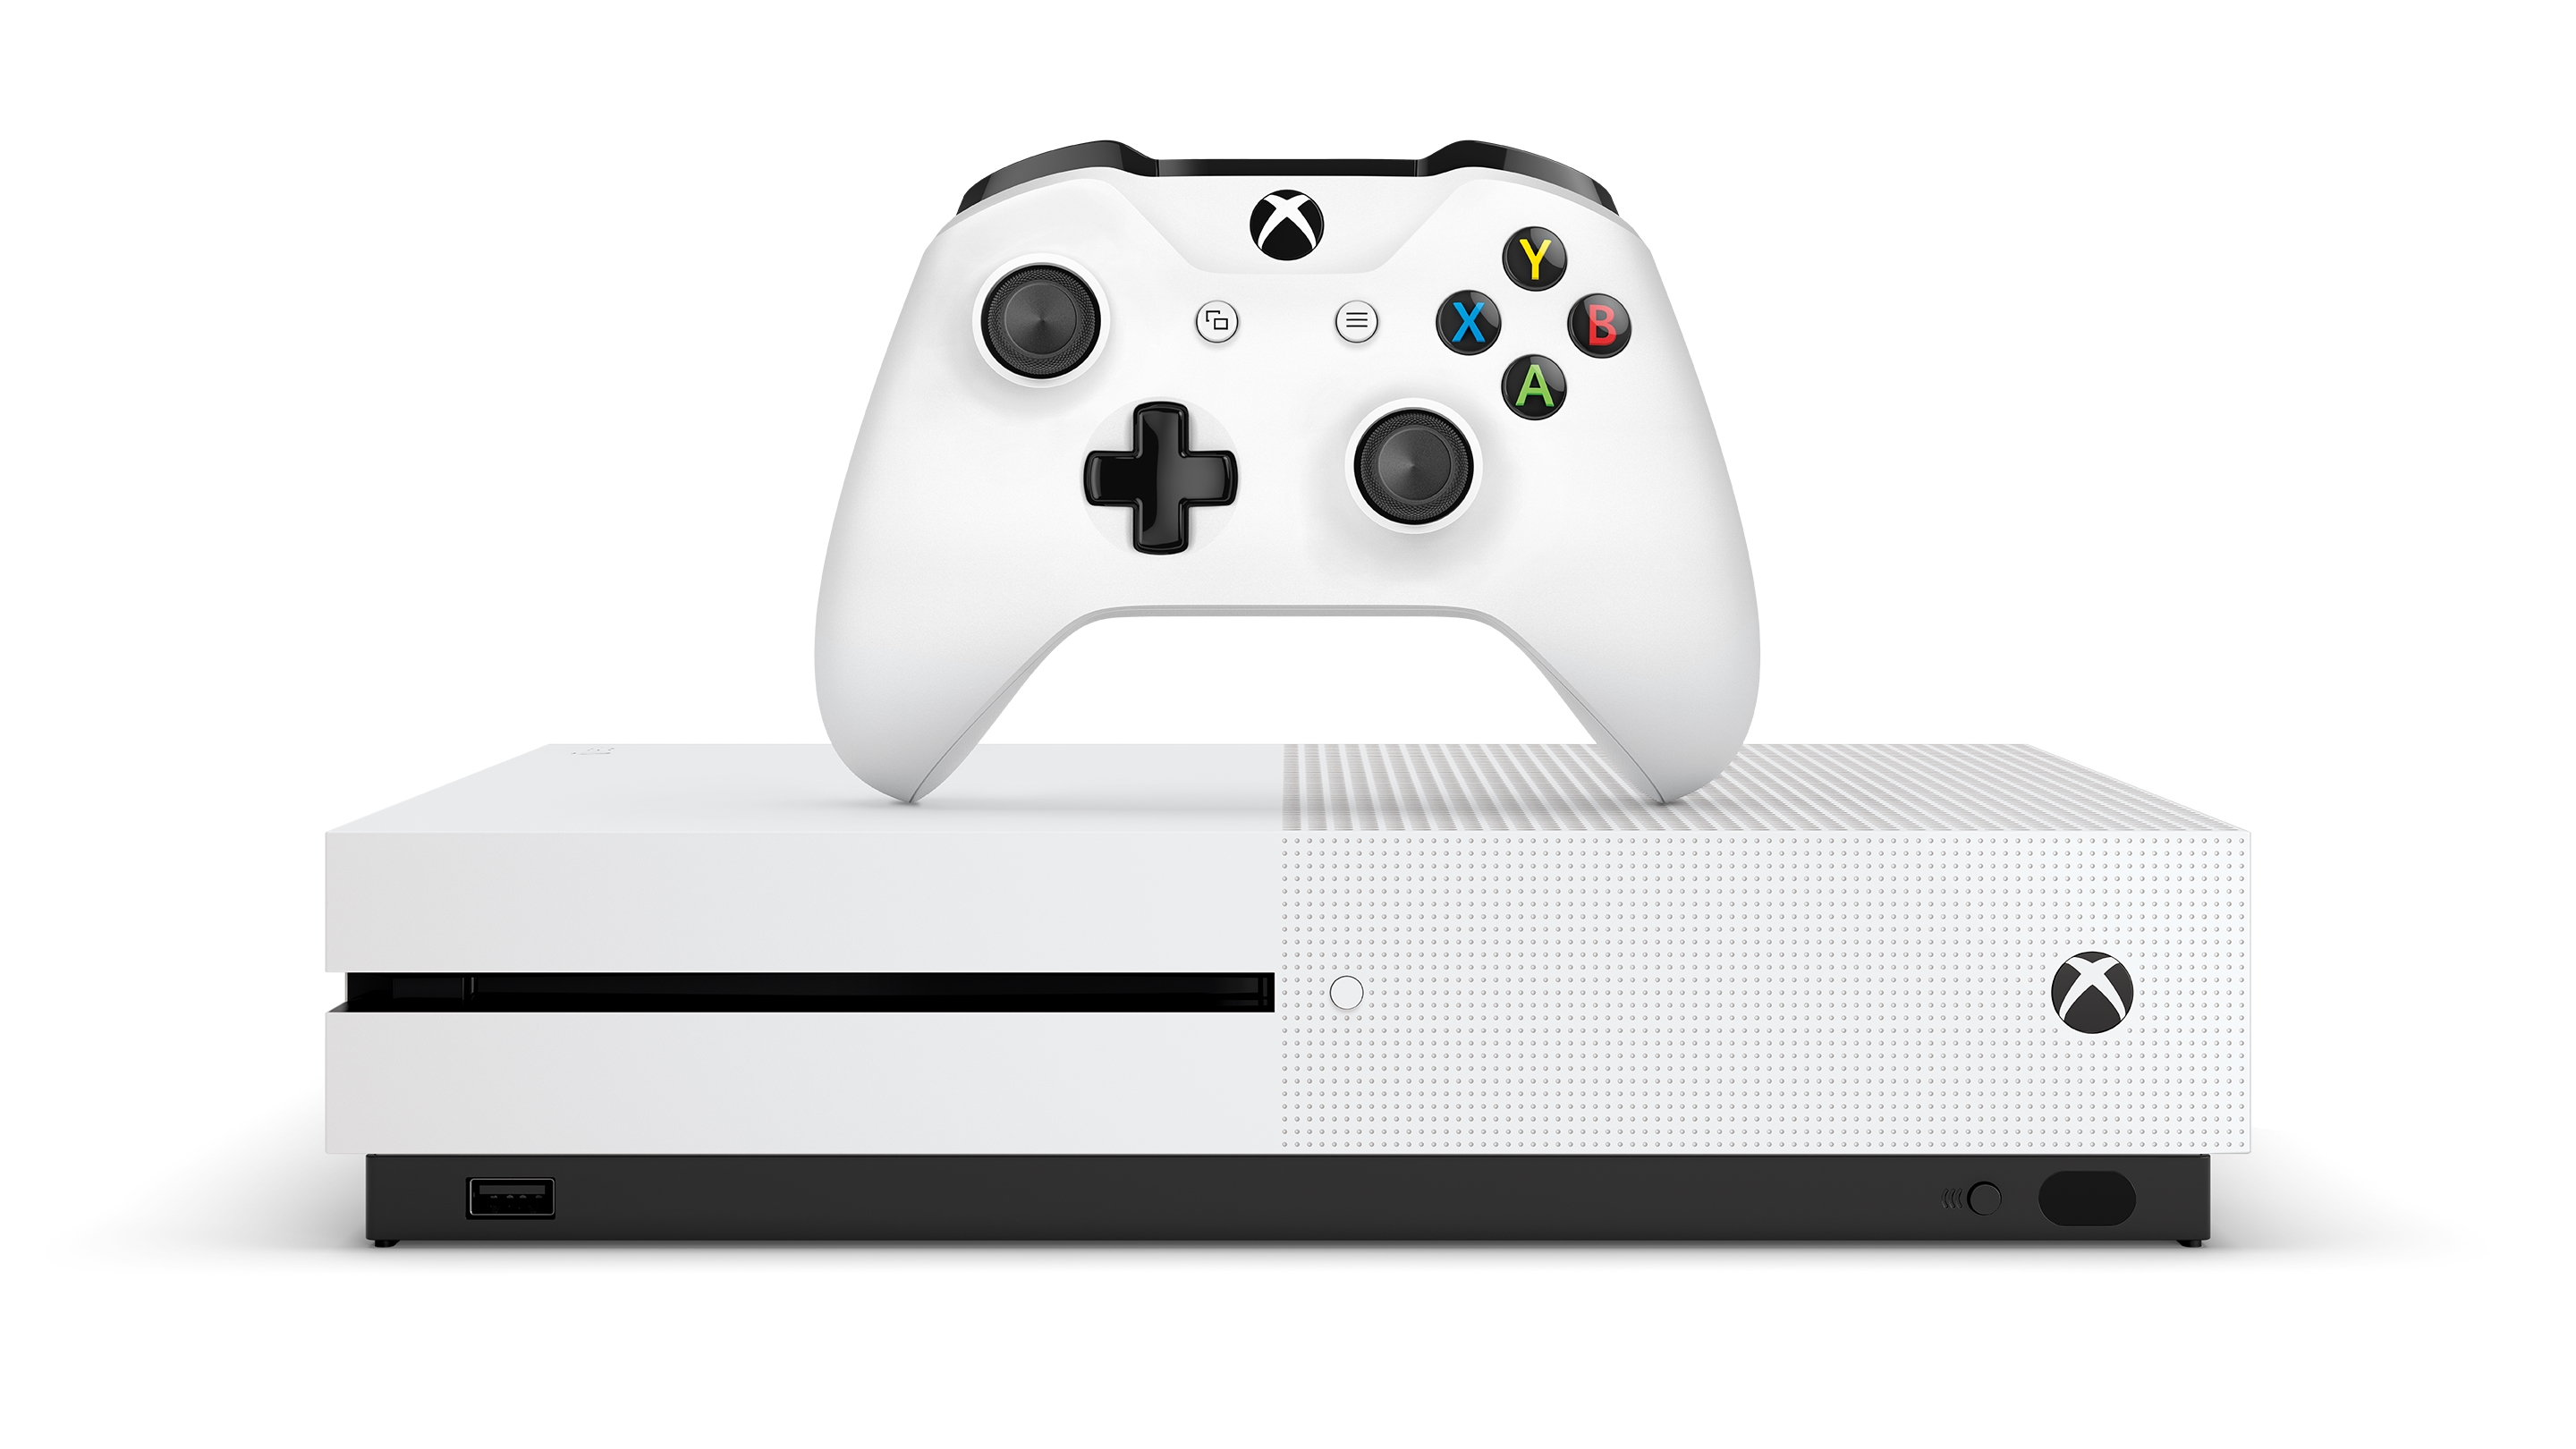 Xbox One S - smaller but not necessarily cheaper